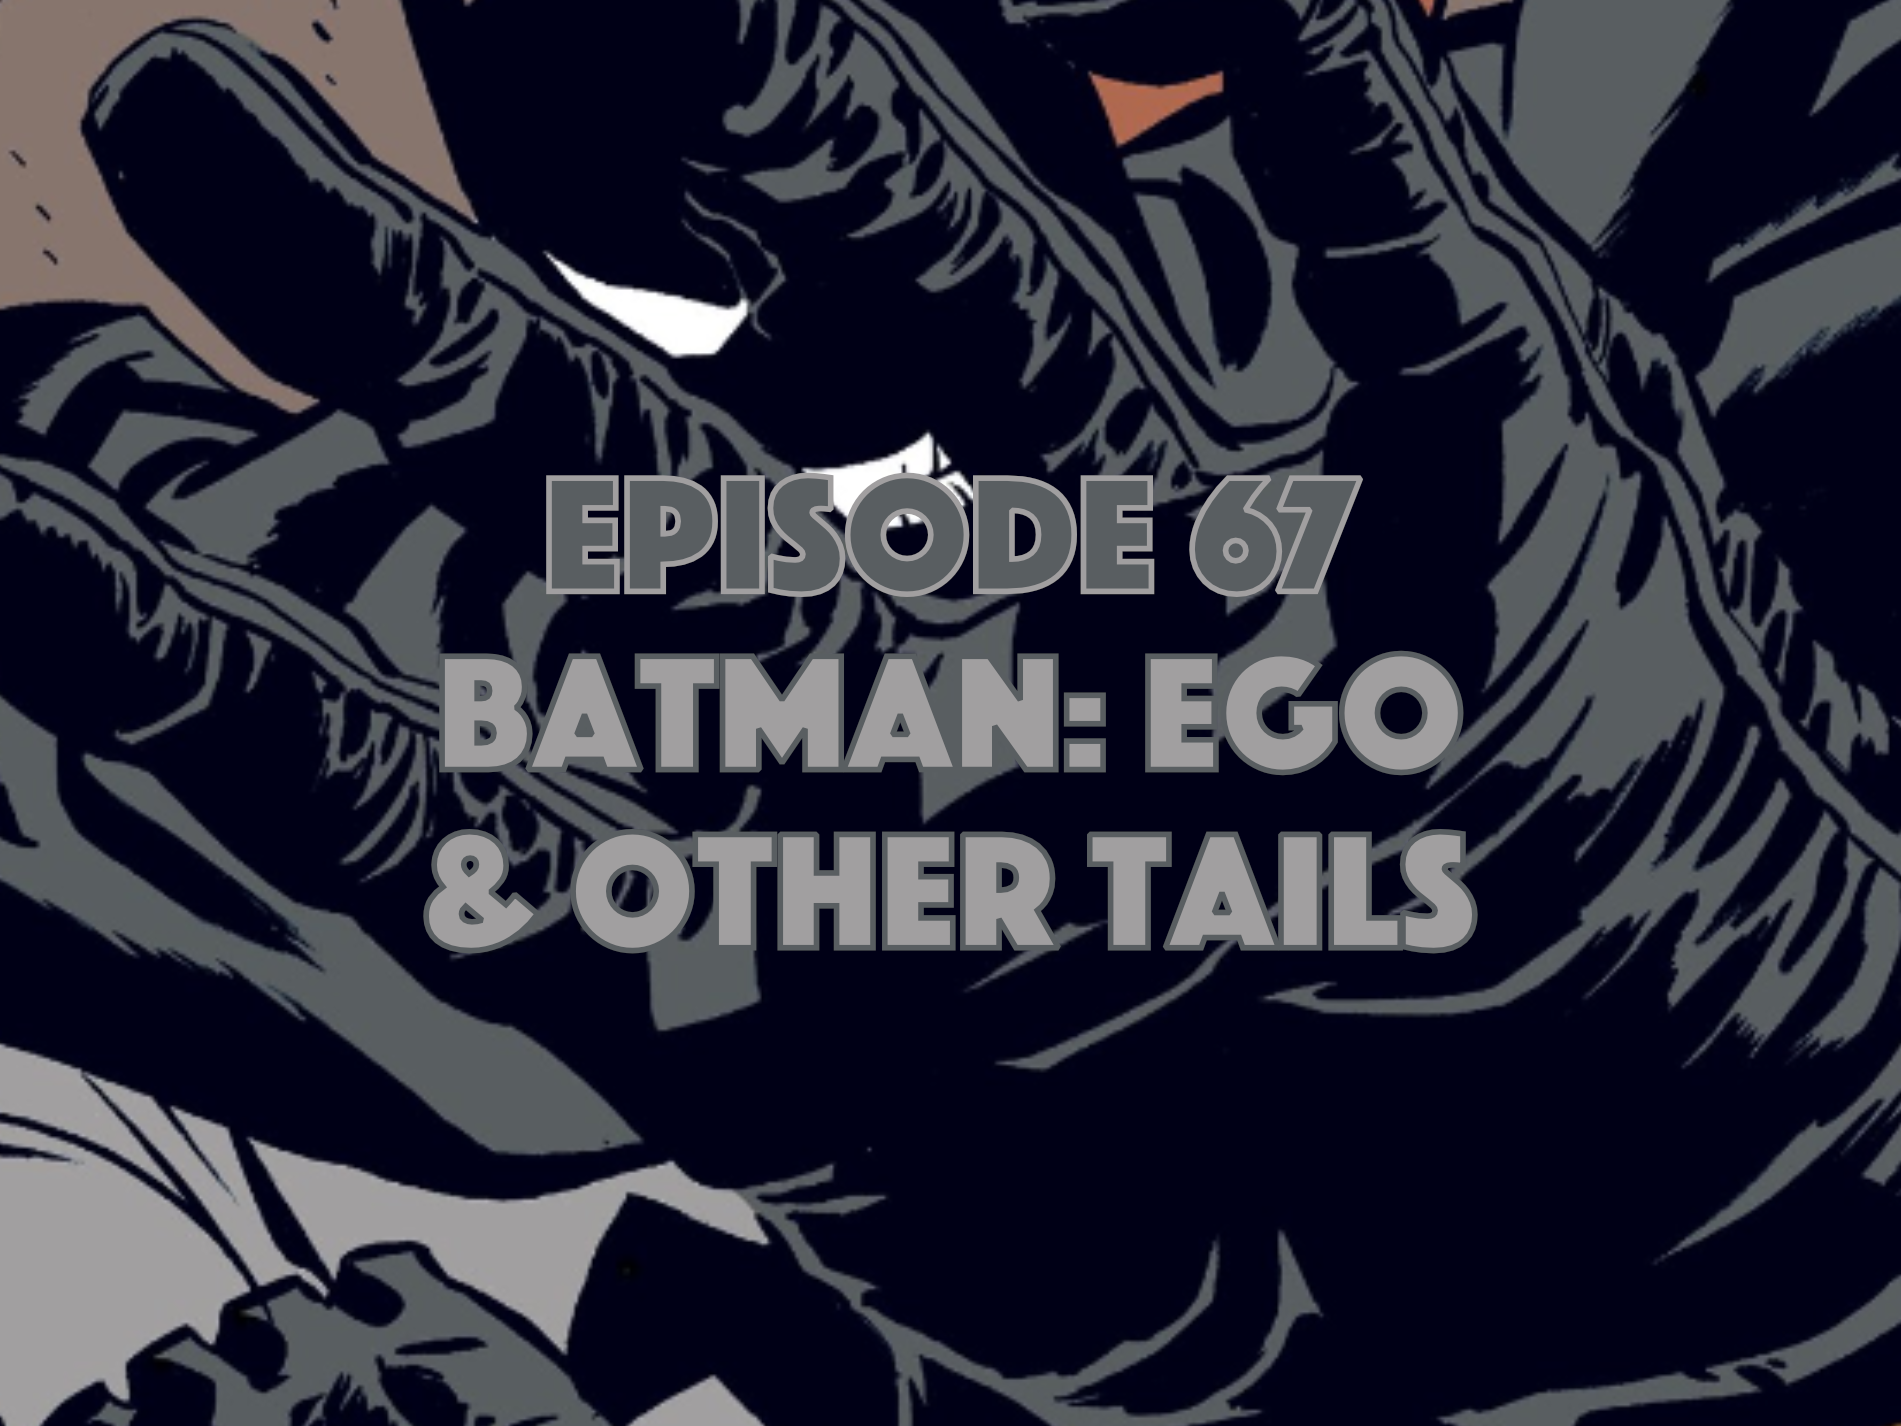 Batman, Batman Ego, Graphic Novel Explorers Club, Comic Book Podcast, Graphic Novel Podcast